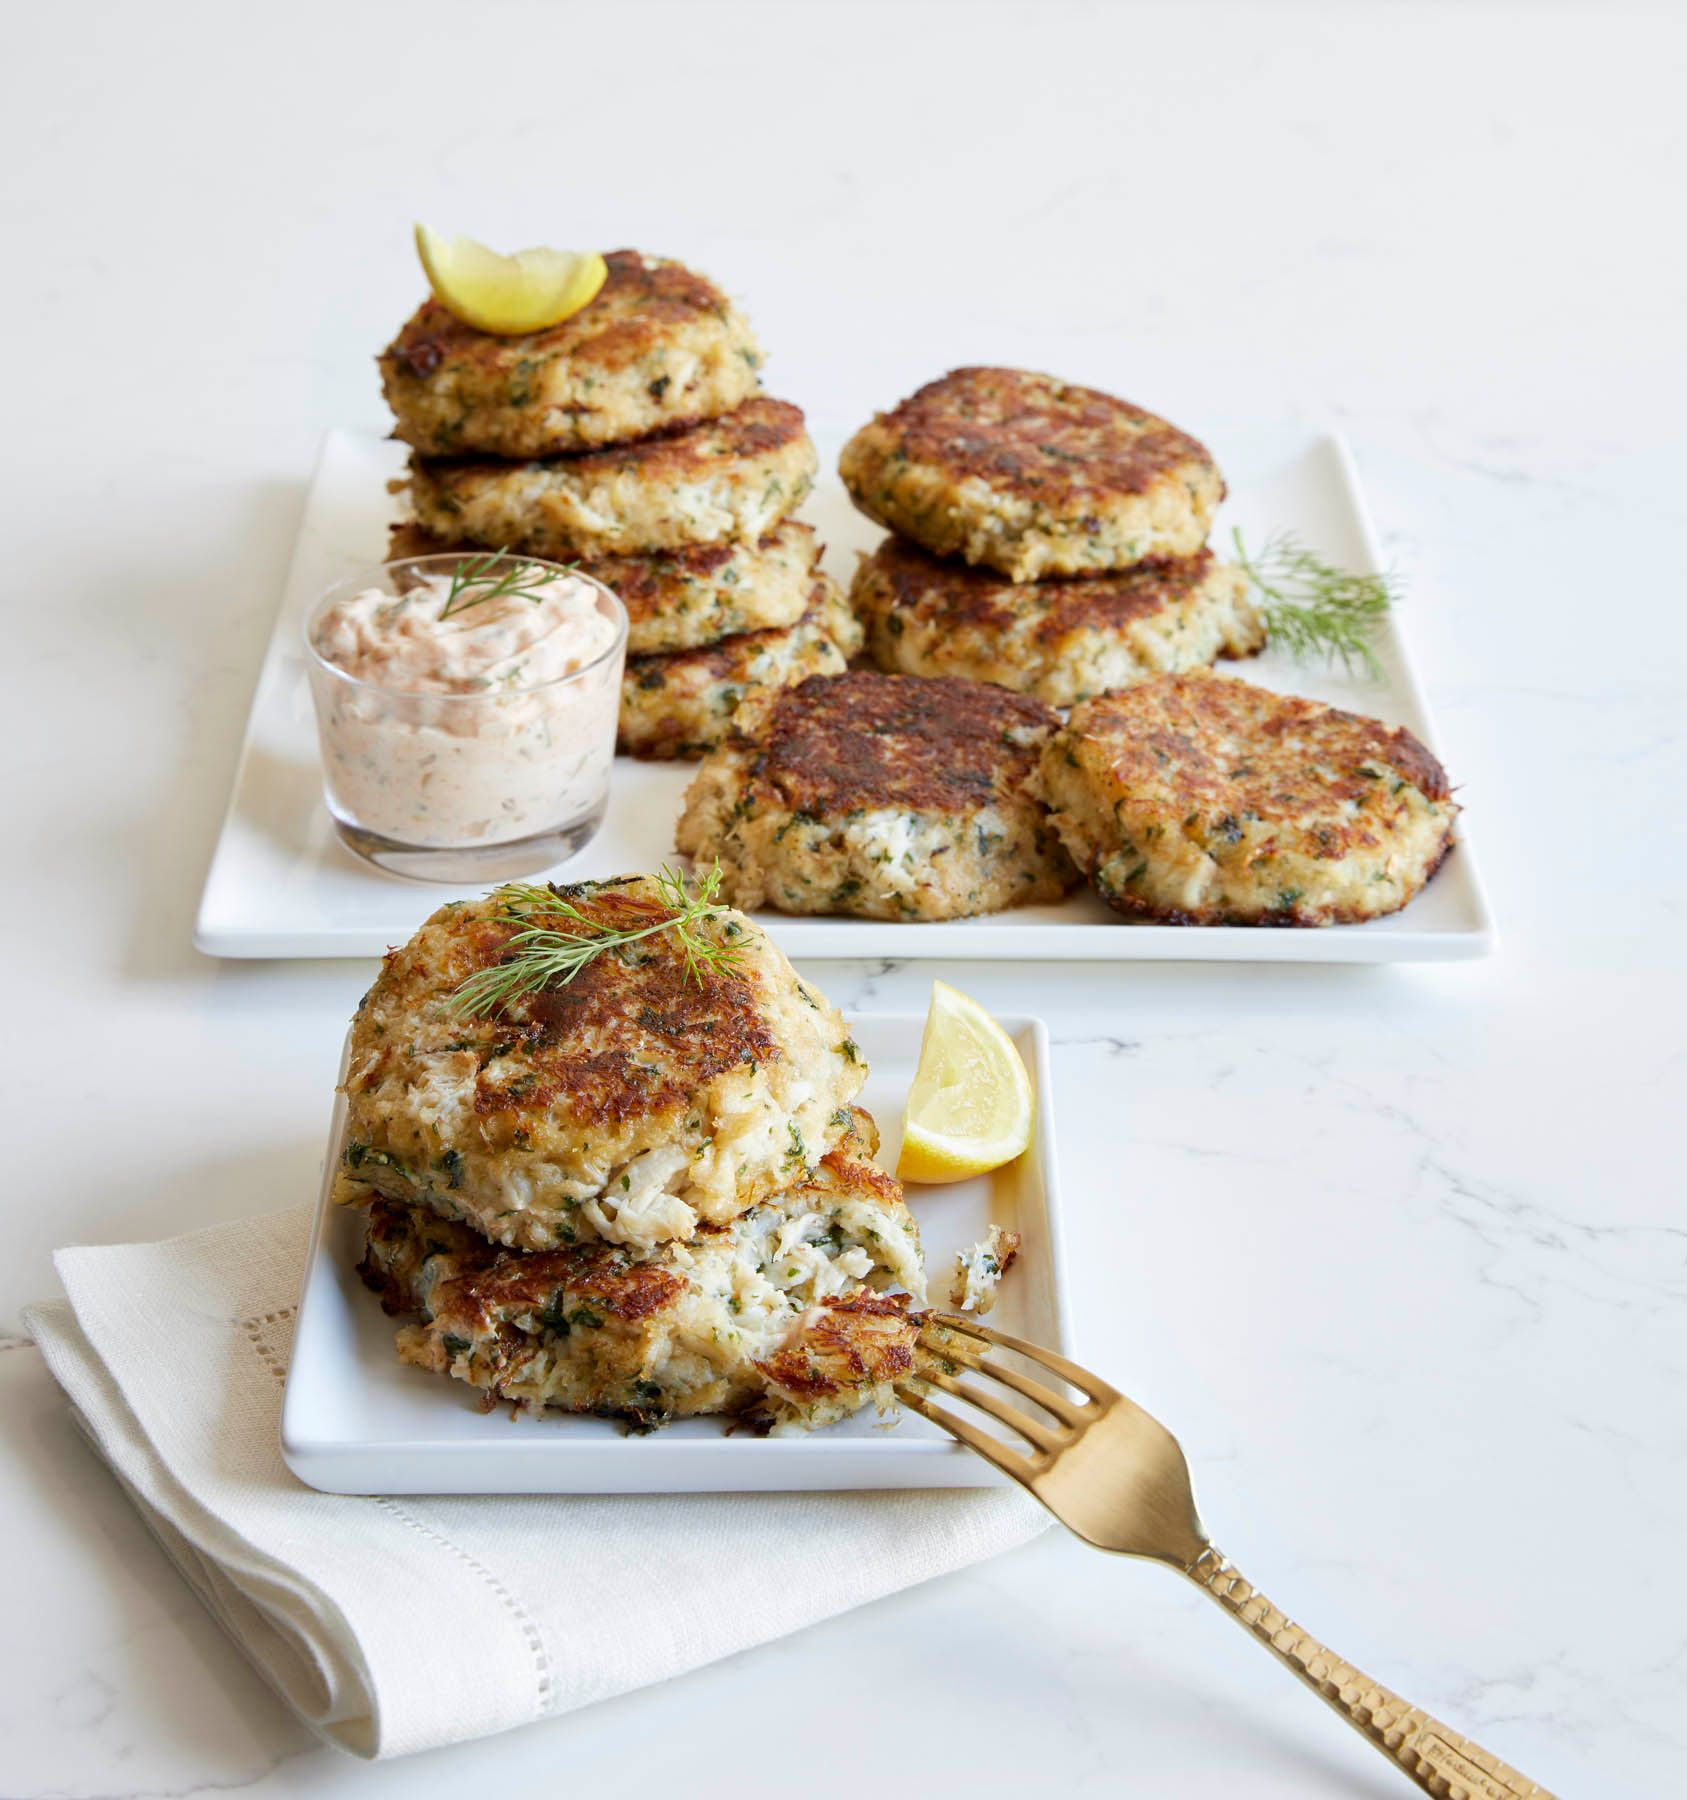 20_CULINAIRE_CRABCAKES_H3S47_HB17_PB.jpg